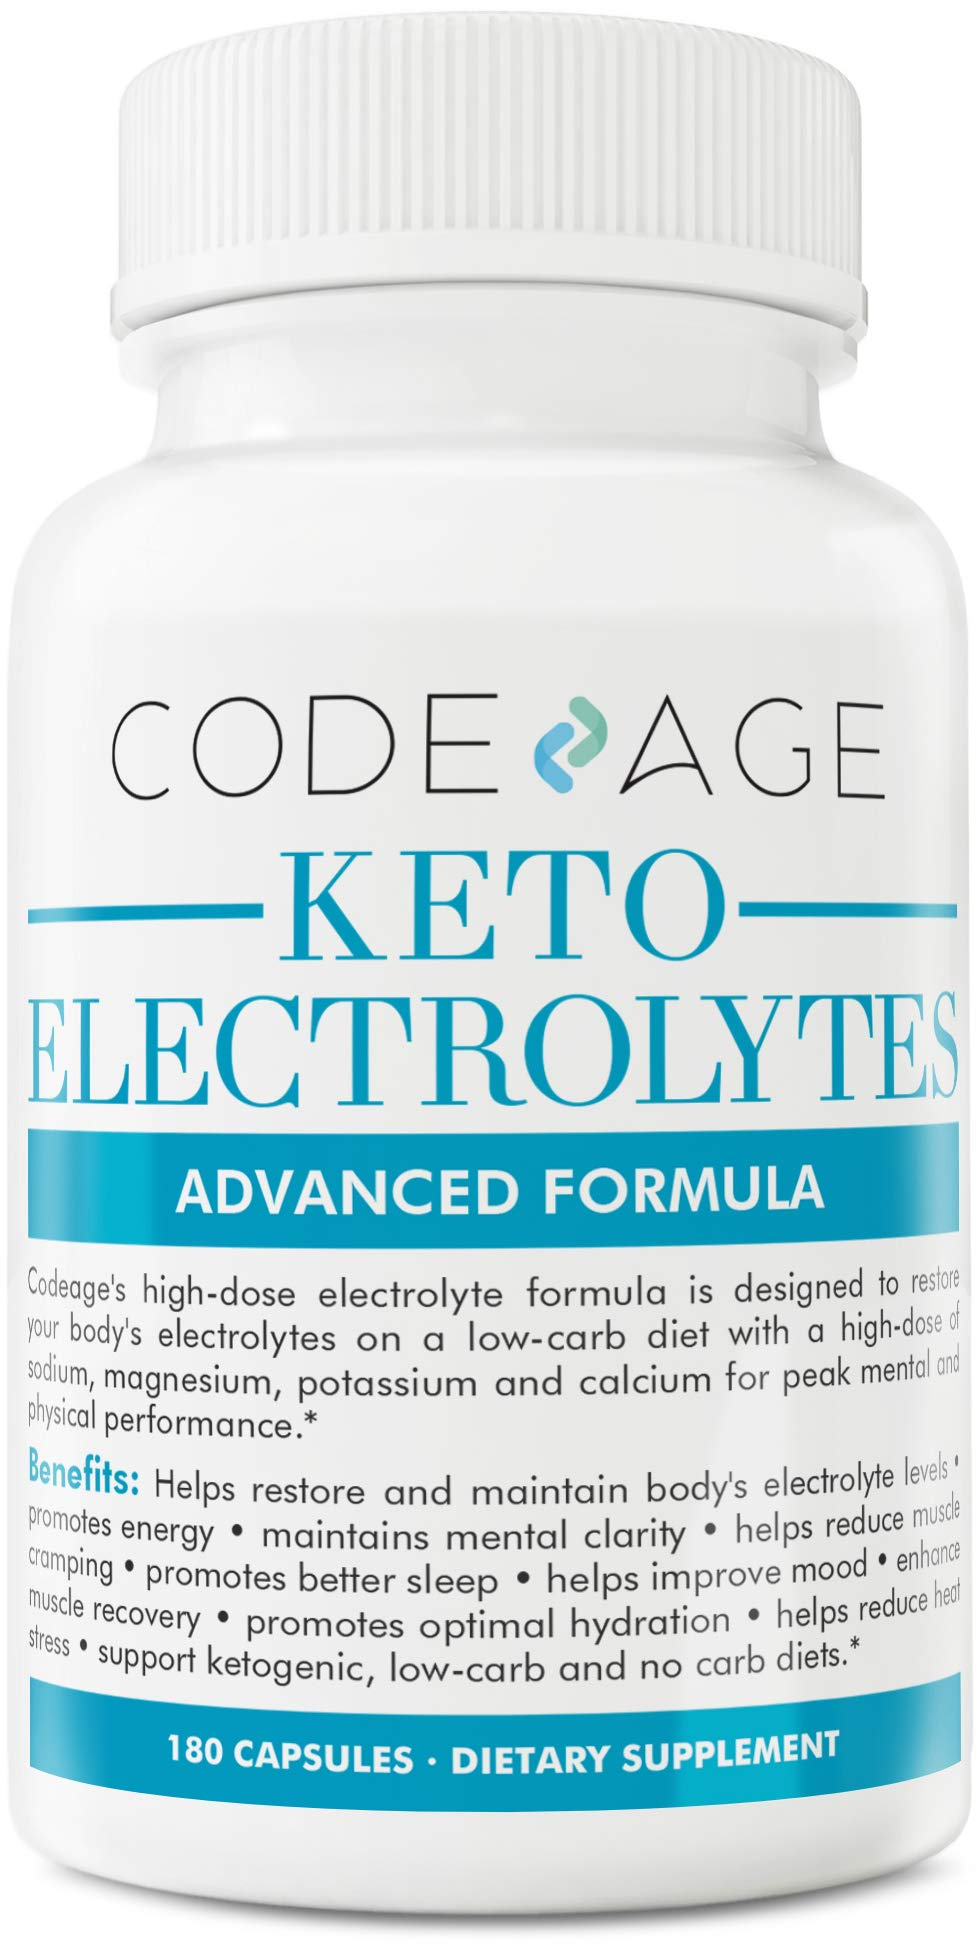 Codeage Keto Electrolyte Supplement Capsules for a Low Carb Diet or Ketogenic Diet, 180 Capsules by Codeage